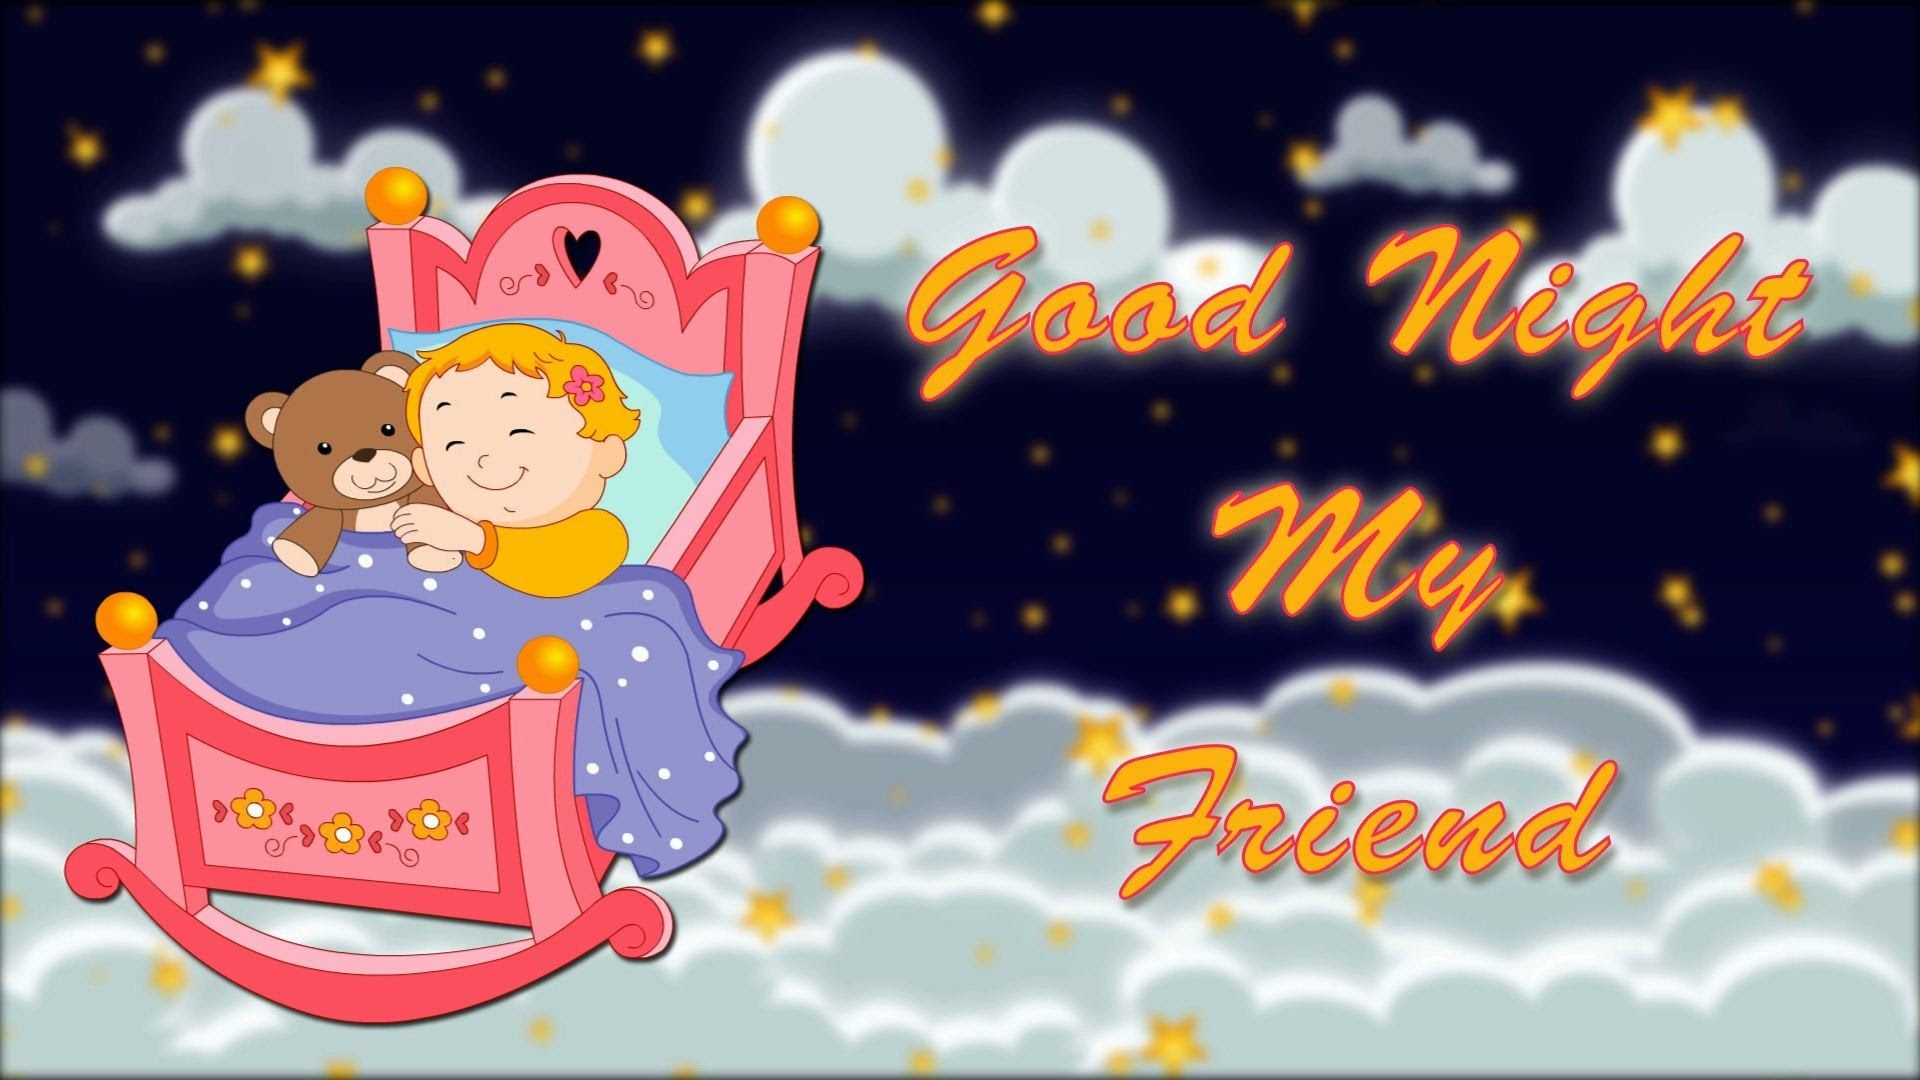 Amazing Good Night And Sweet Dreams